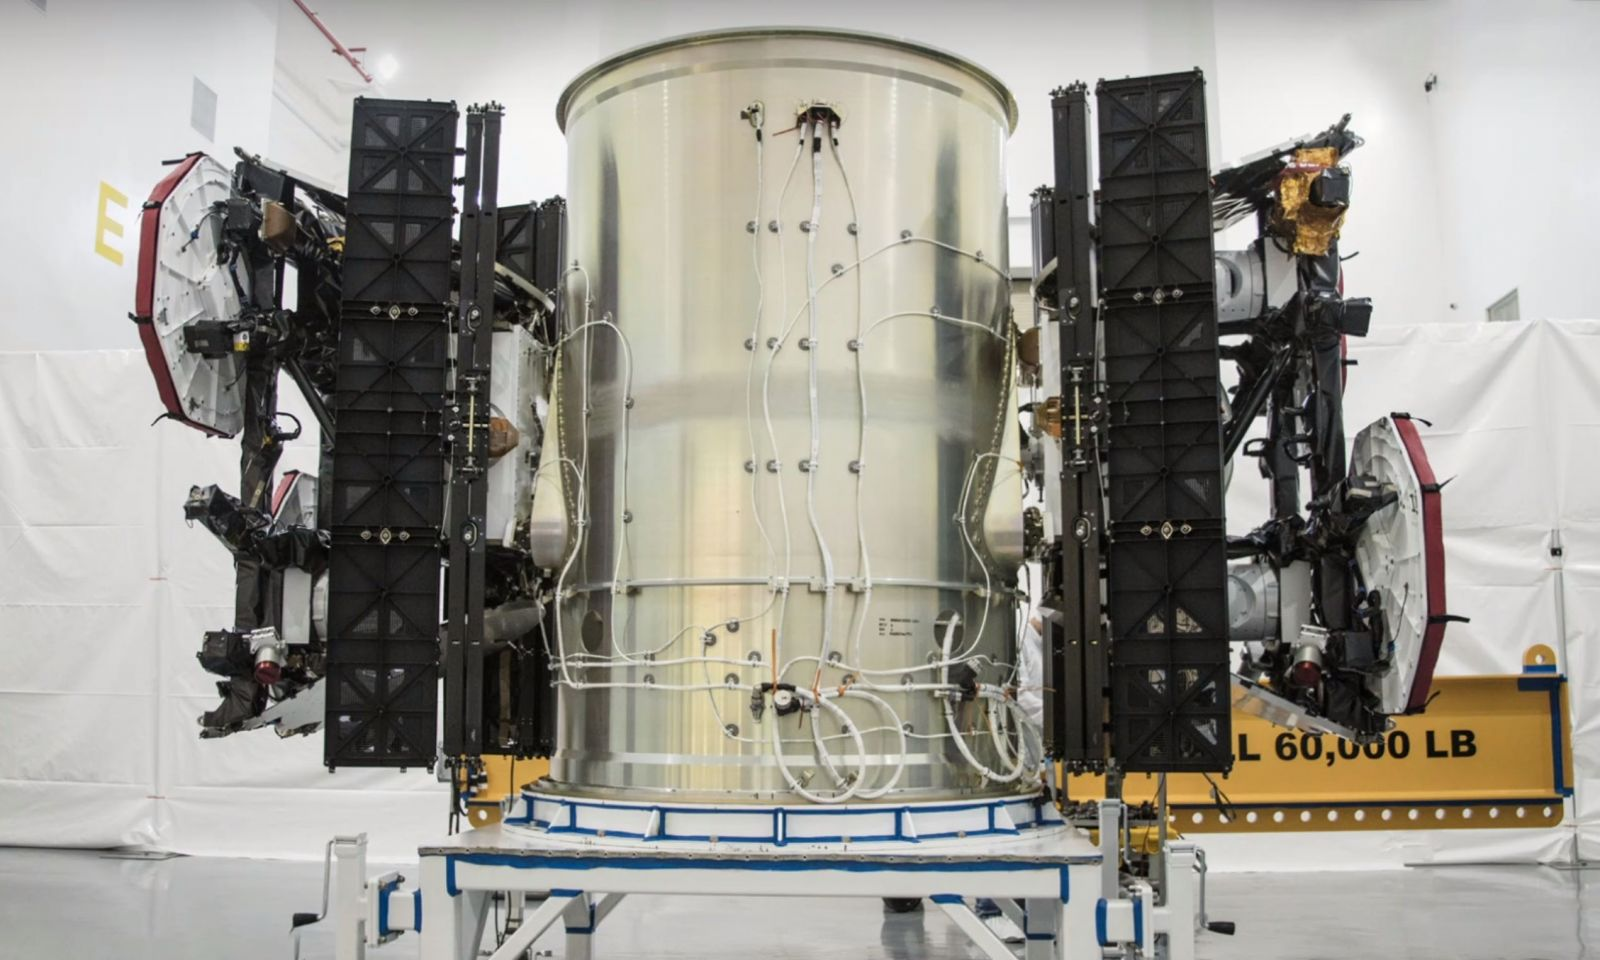 The first two prototype Starlink satellites were launched by SpaceX in February 2018. Photo Credit: SpaceX